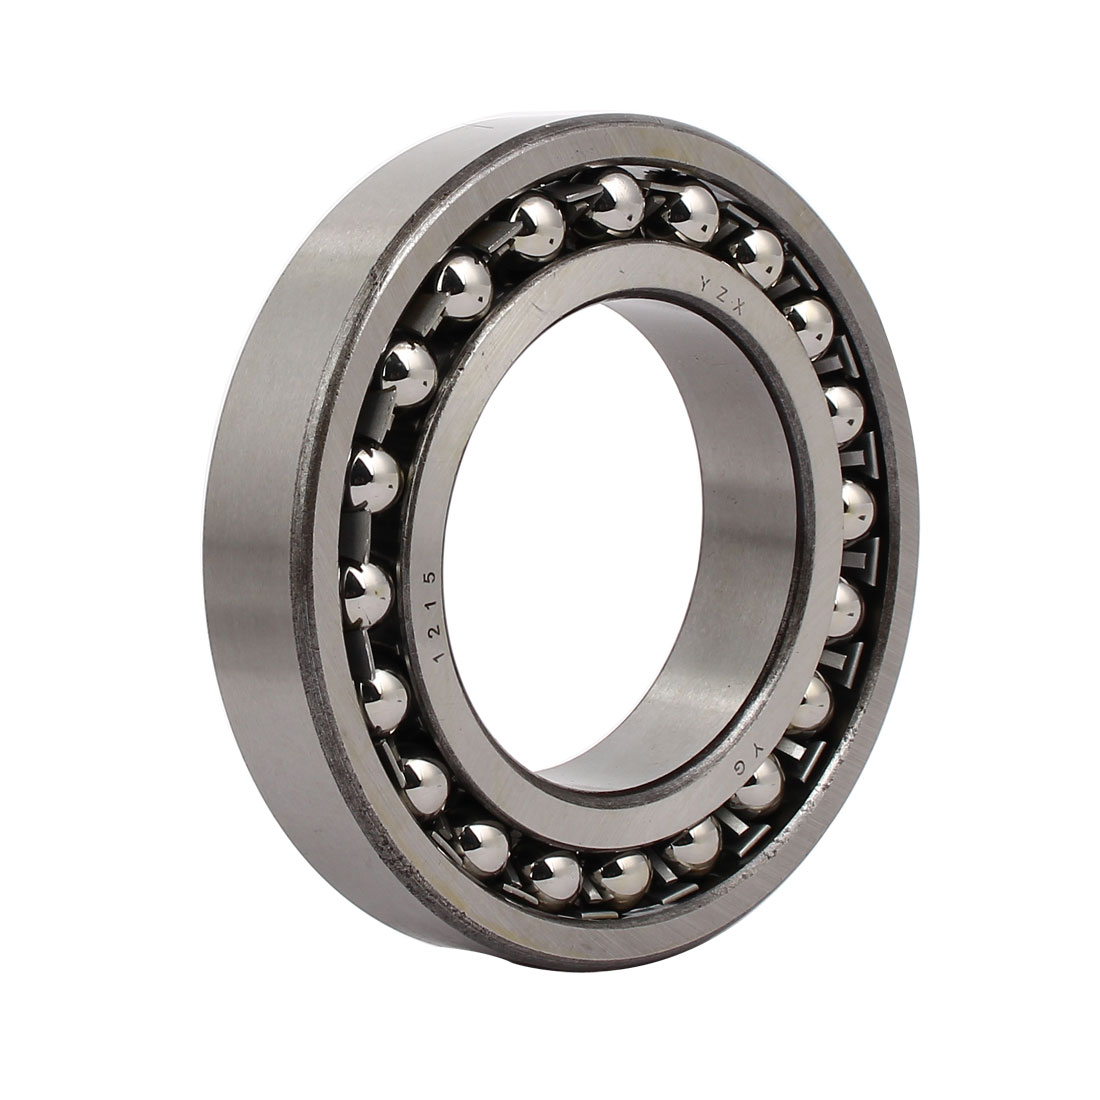 130mmx75mmx25mm 1215 Double Row Self-Aligning Ball Bearing Silver Tone